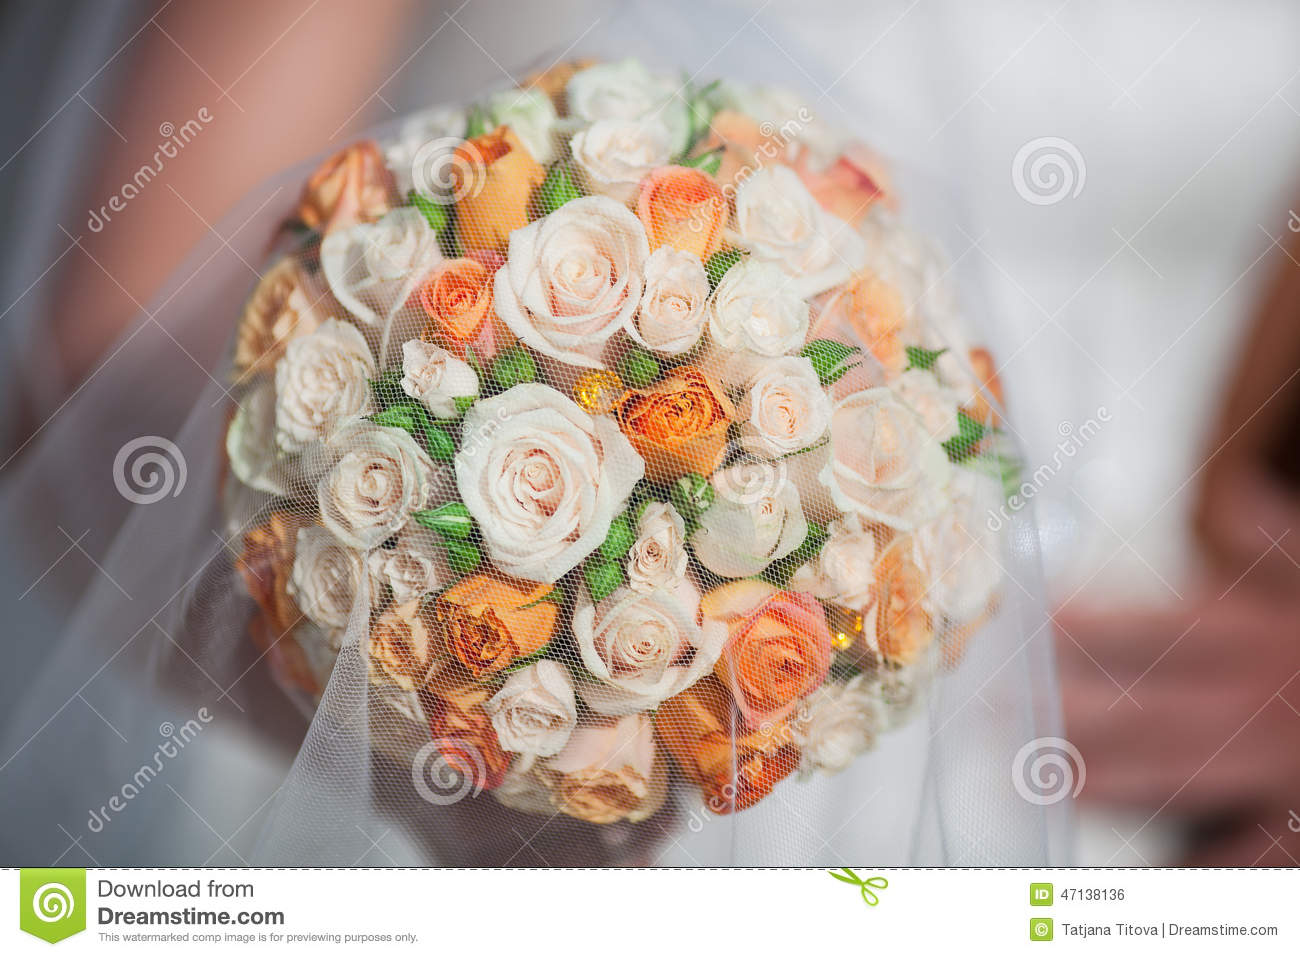 Bridal bouquet with orange and white roses stock photo image of bridal bouquet with orange and white roses flora love mightylinksfo